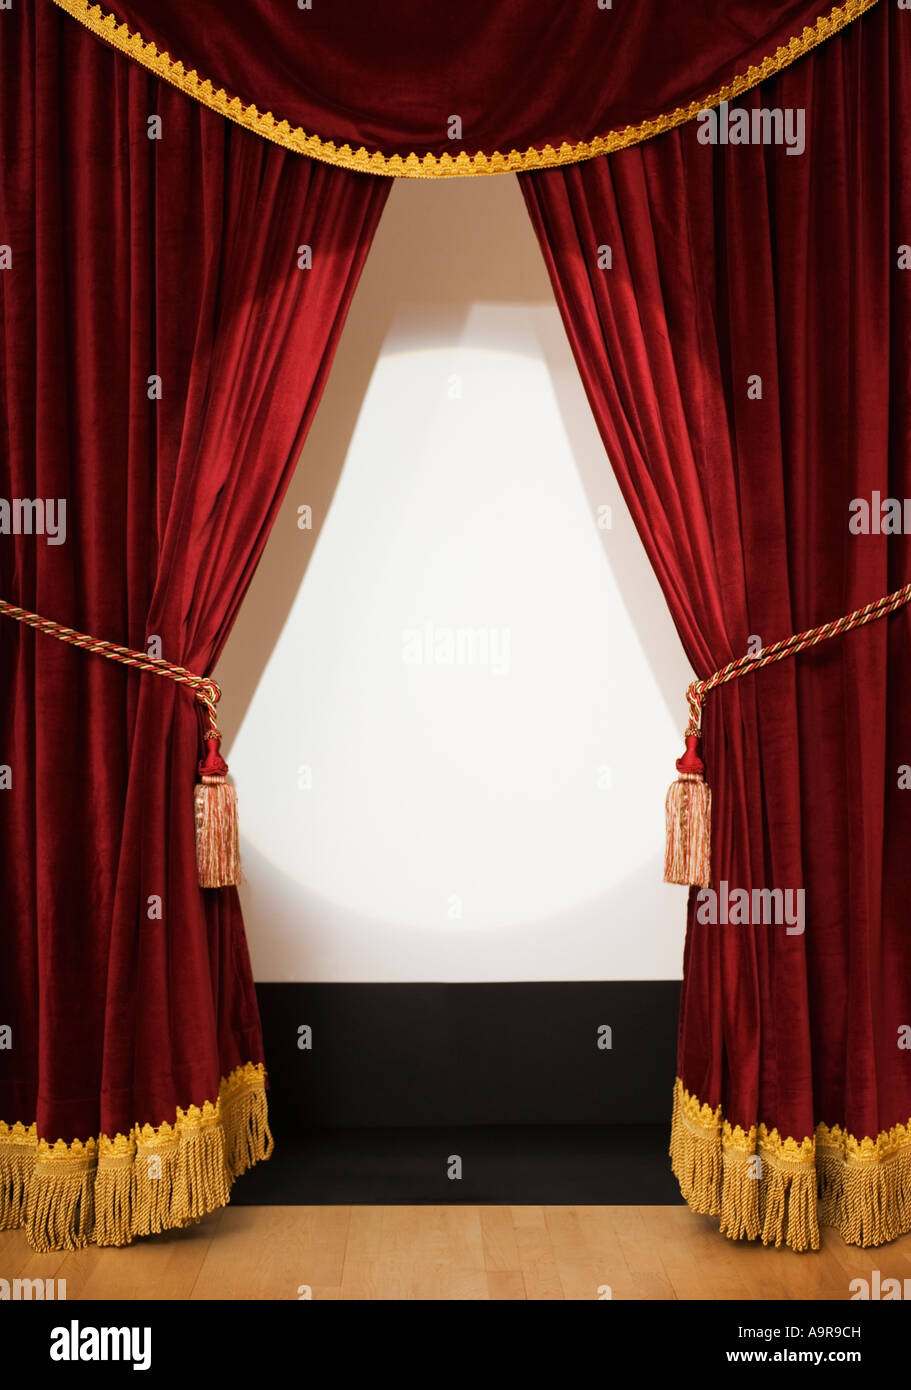 Open theater drapes or stage curtains royalty free stock image image - Screen Behind Open Stage Curtains